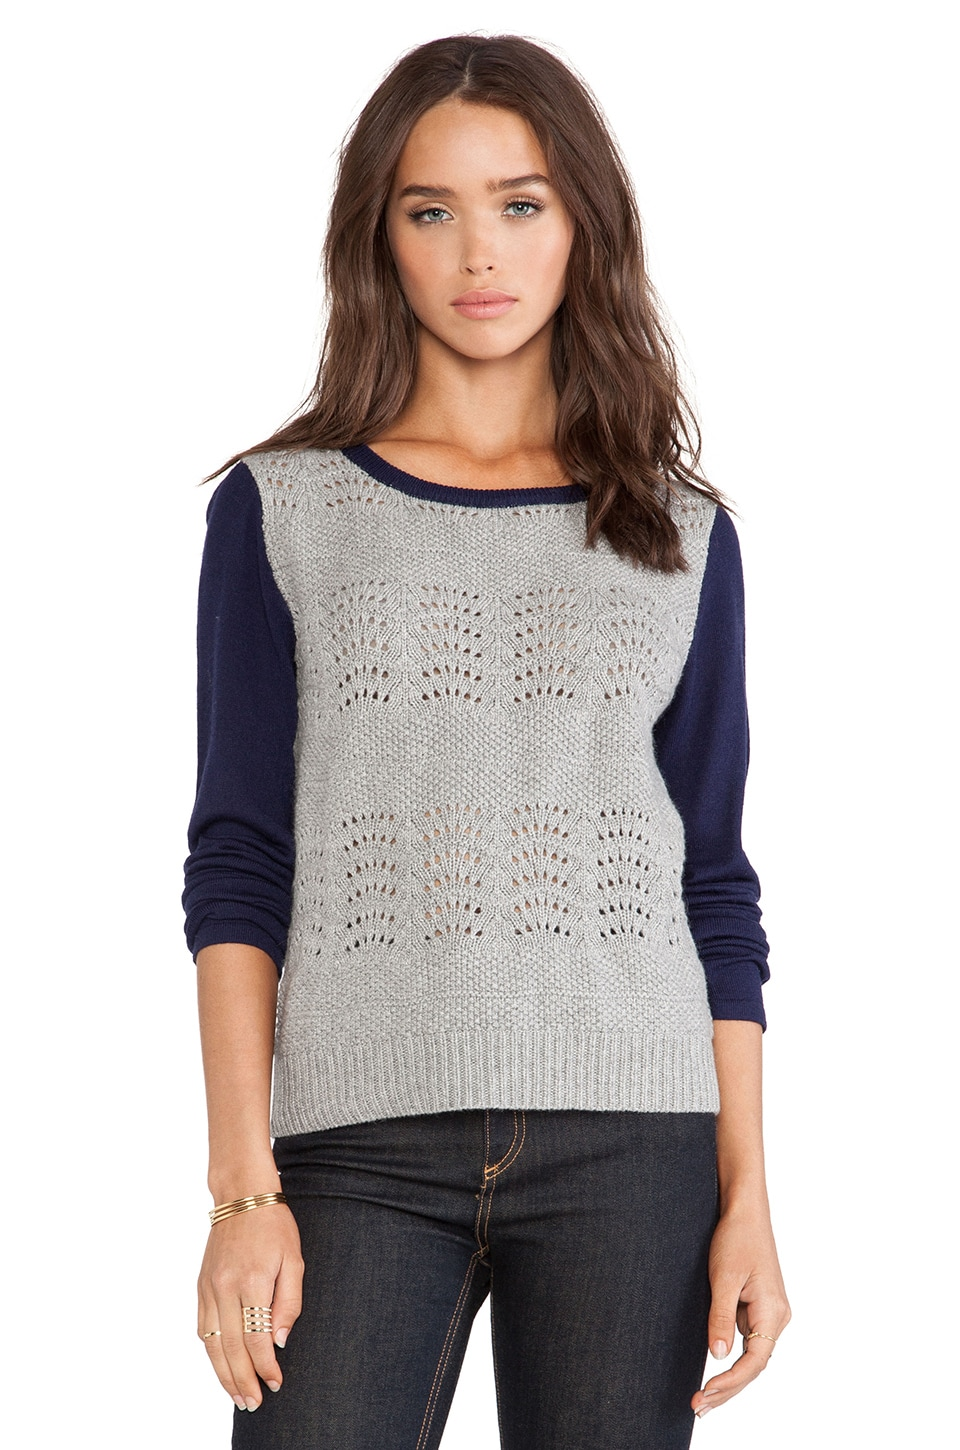 Linear B. Duo Pullover Sweater in Navy & Grey